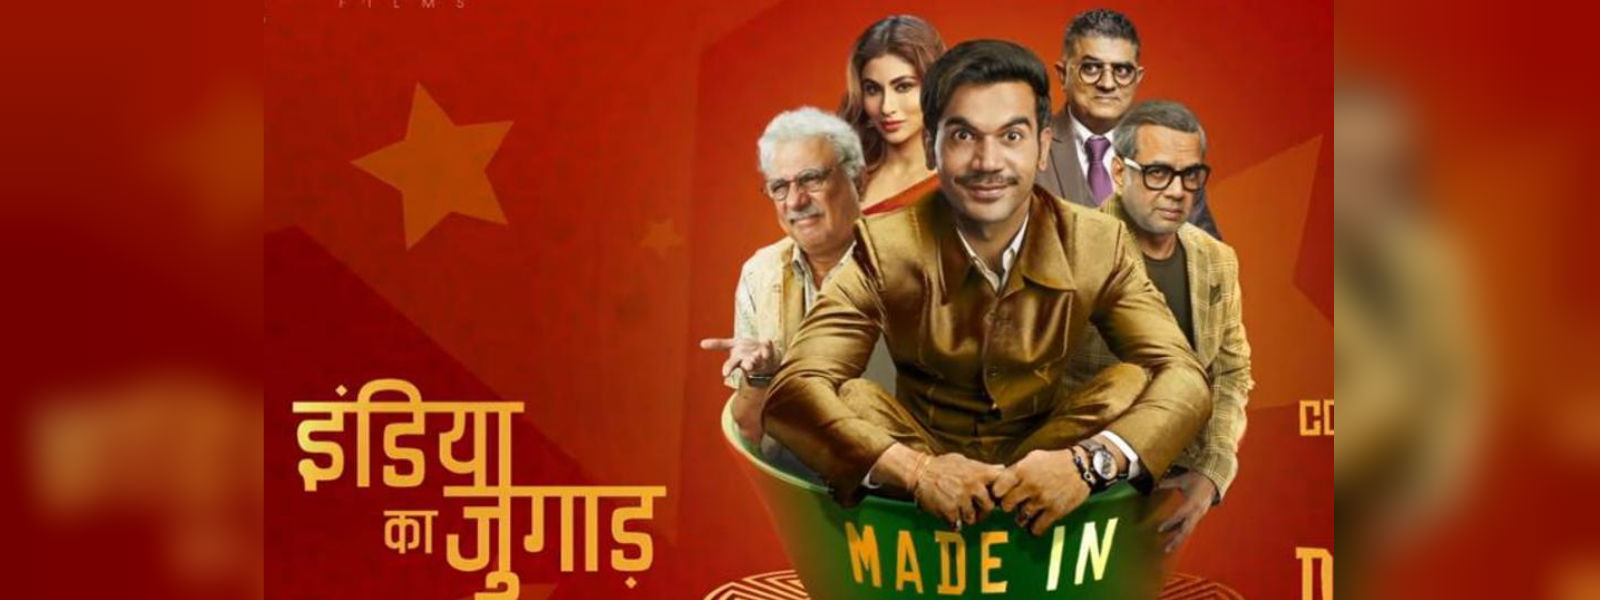 Bollywood stars promote comedy movie 'Made in China' in New Delhi